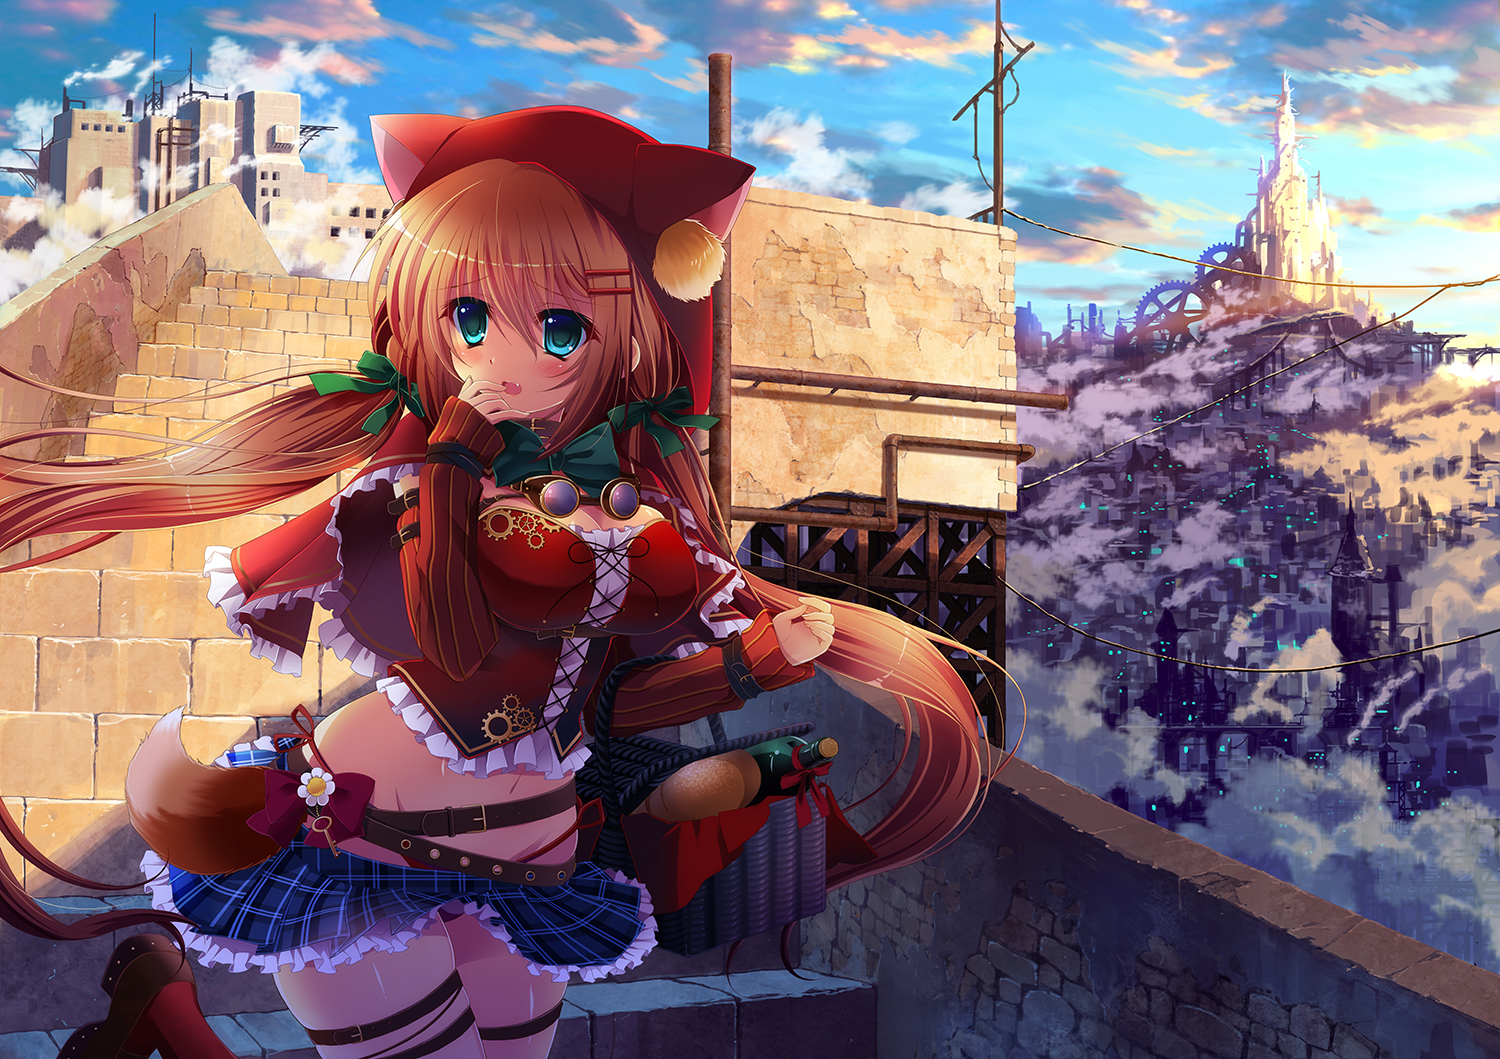 animal_ears aqua_eyes bow breasts brown_hair cape cleavage drink food hoodie ichi_rin little_red_riding_hood long_hair original red_riding_hood ribbons skirt twintails